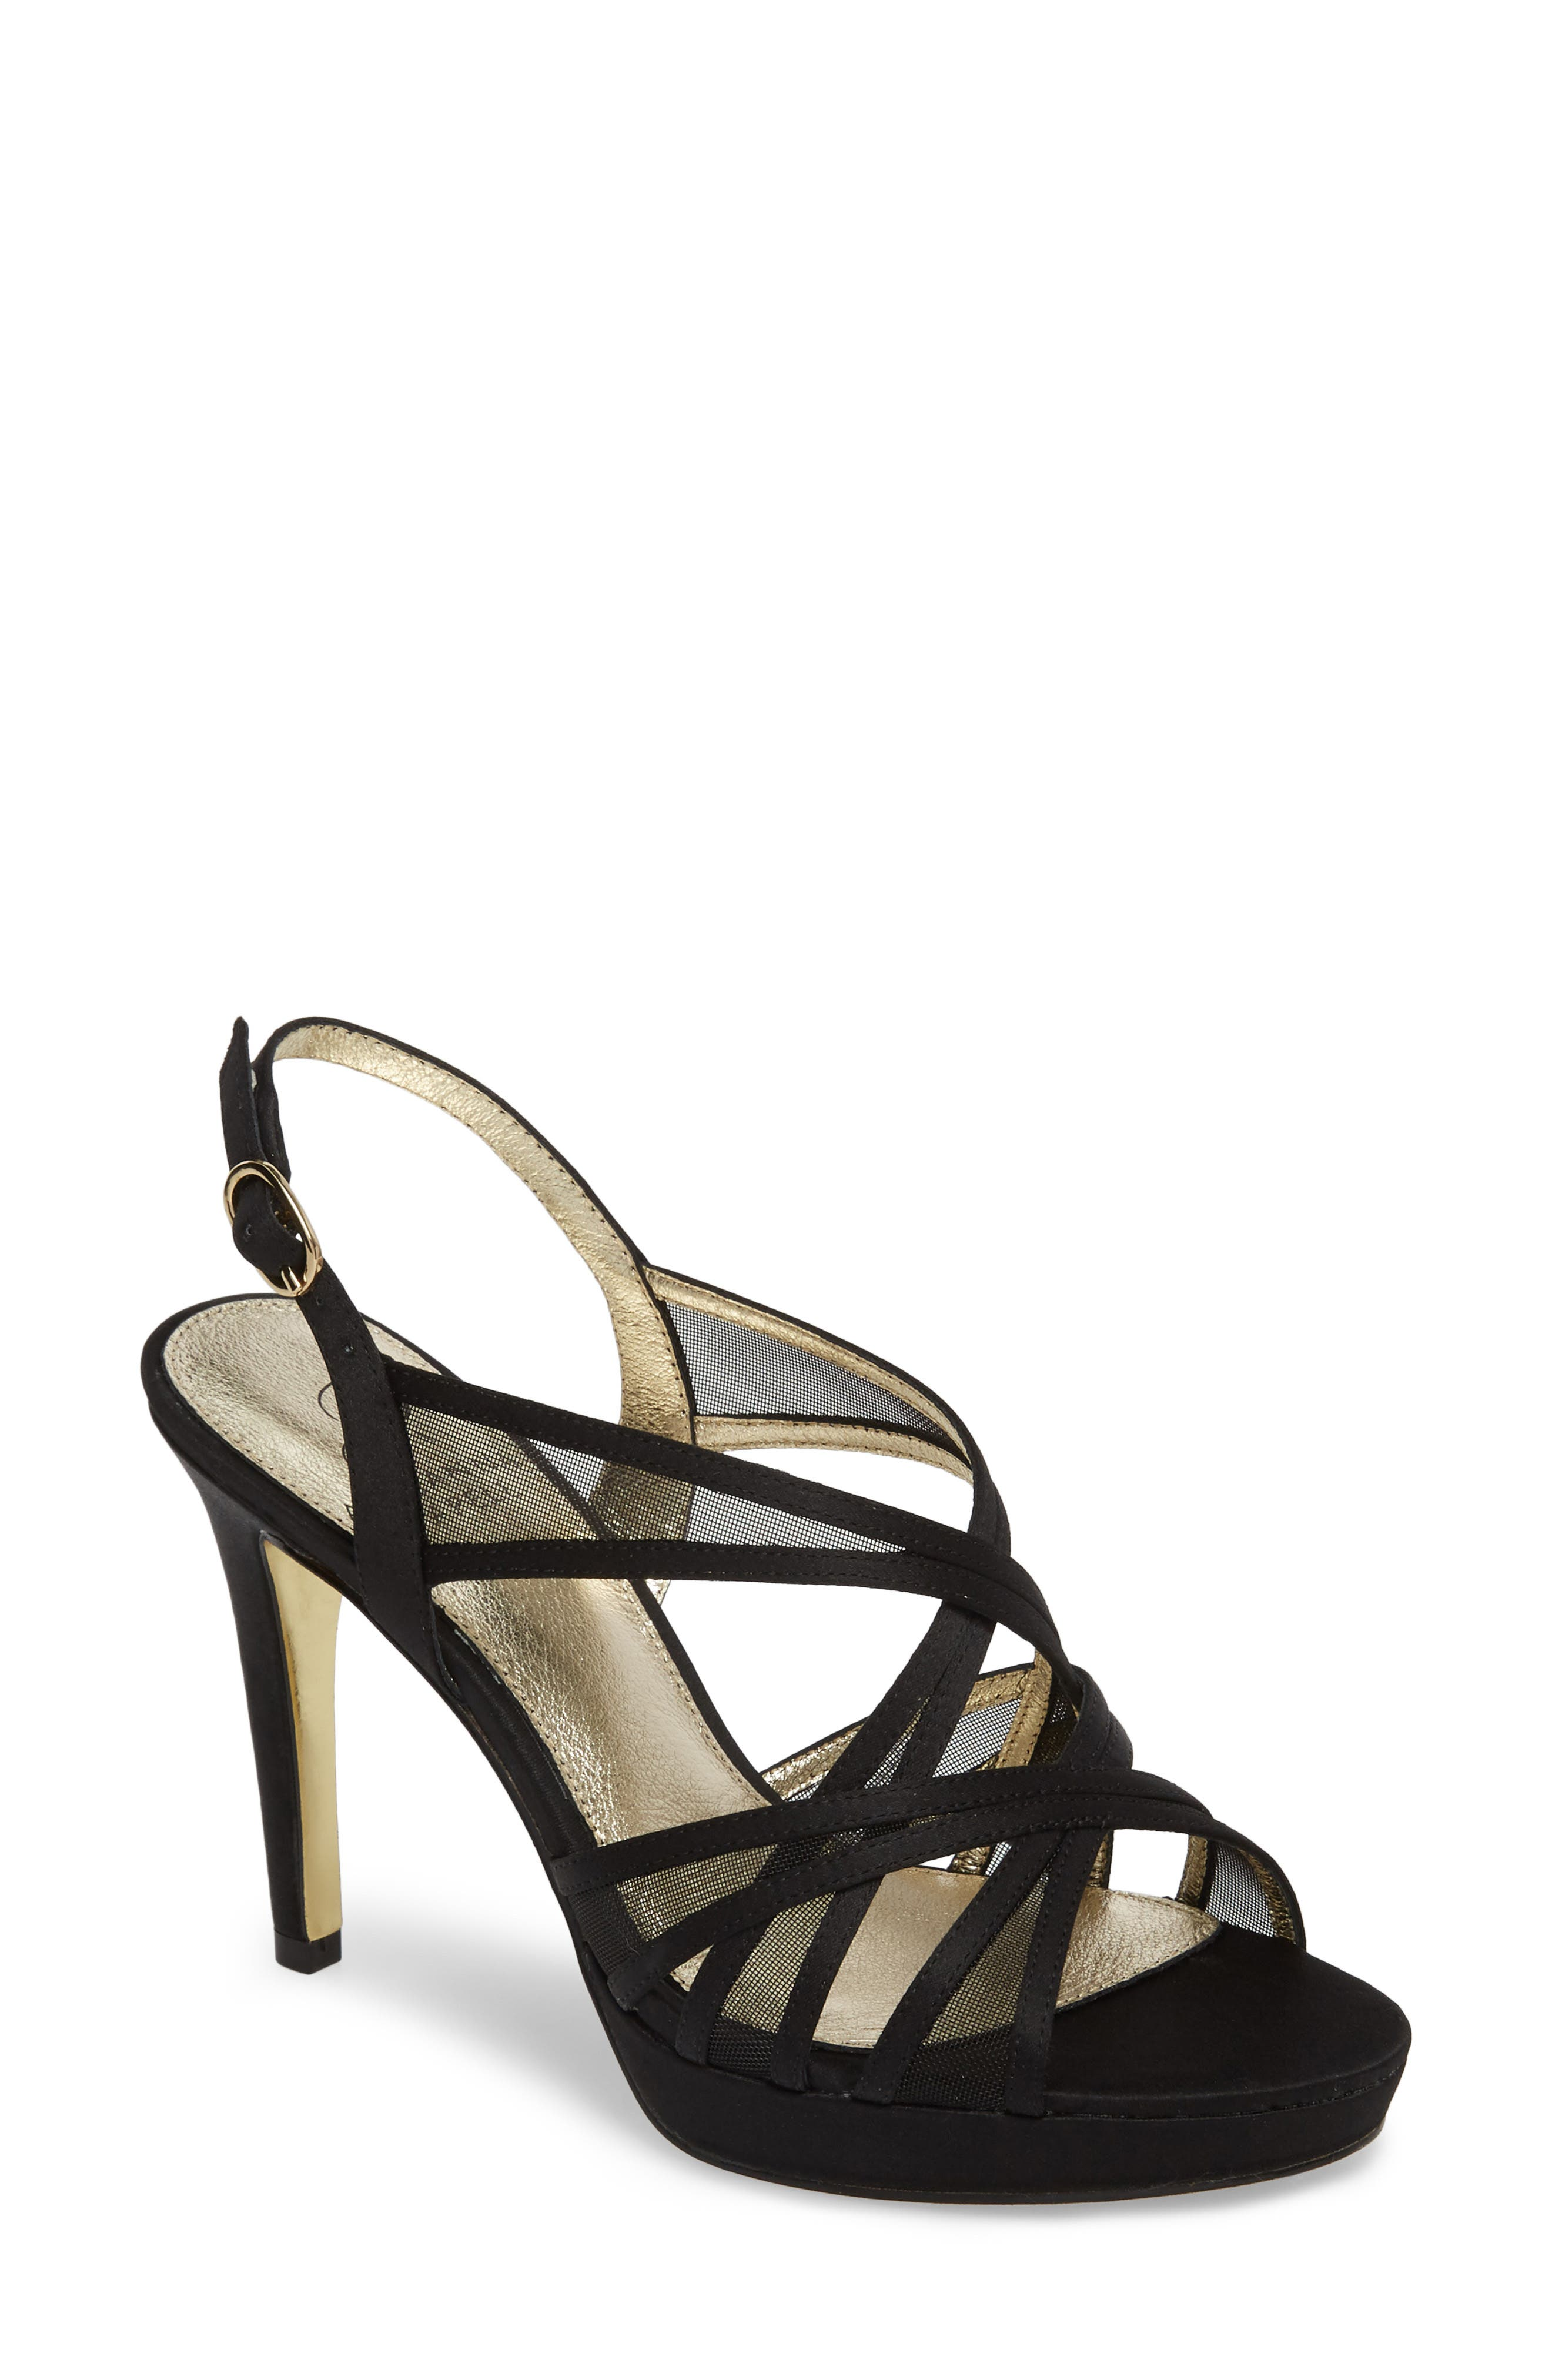 Adri Platform Sandal,                         Main,                         color, Black Satin